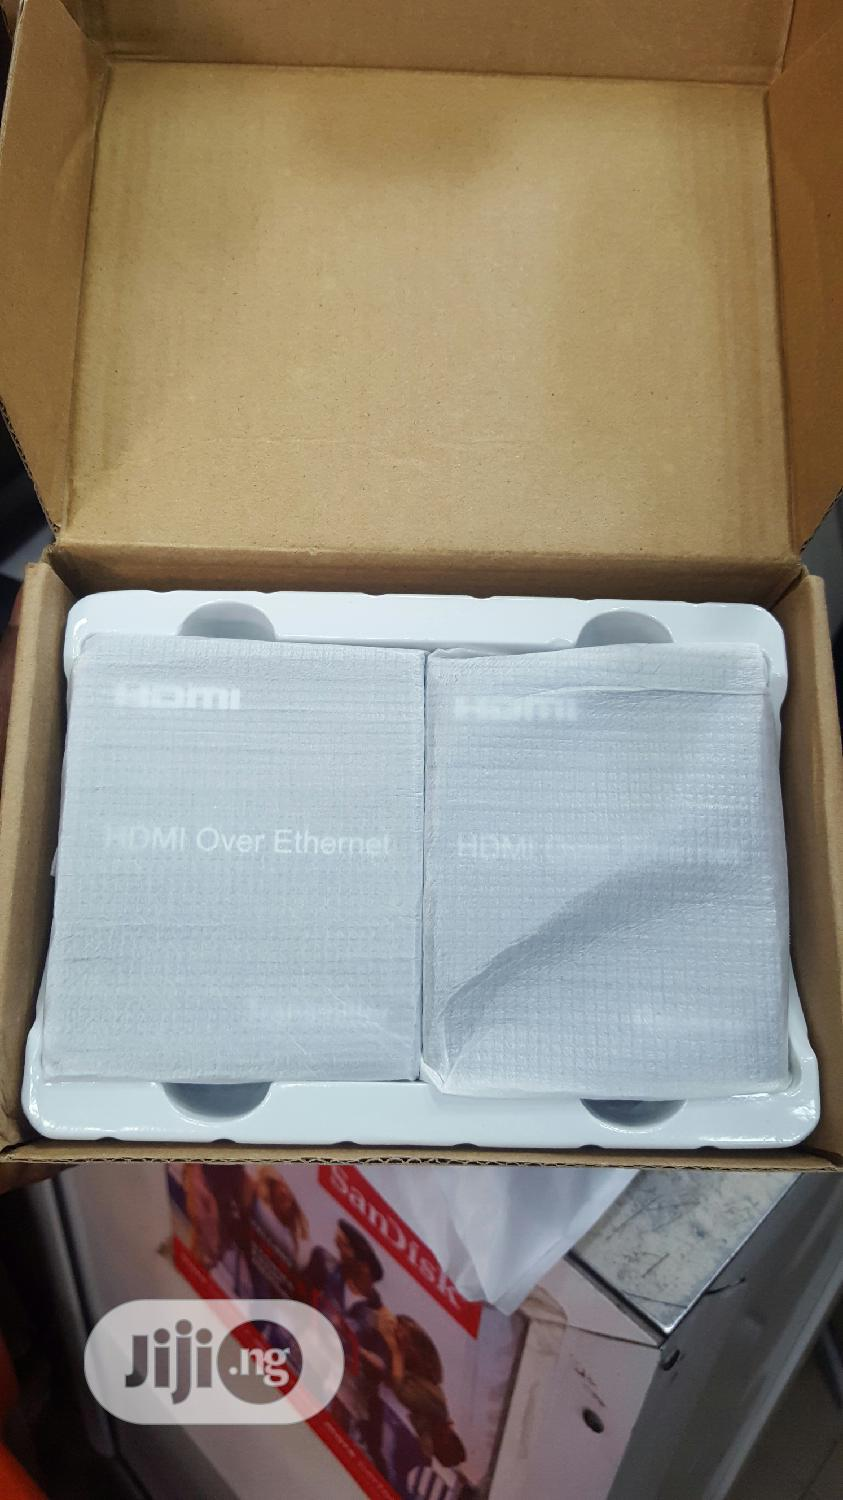 120m Hdmi Extender | Computer Accessories  for sale in Ikeja, Lagos State, Nigeria